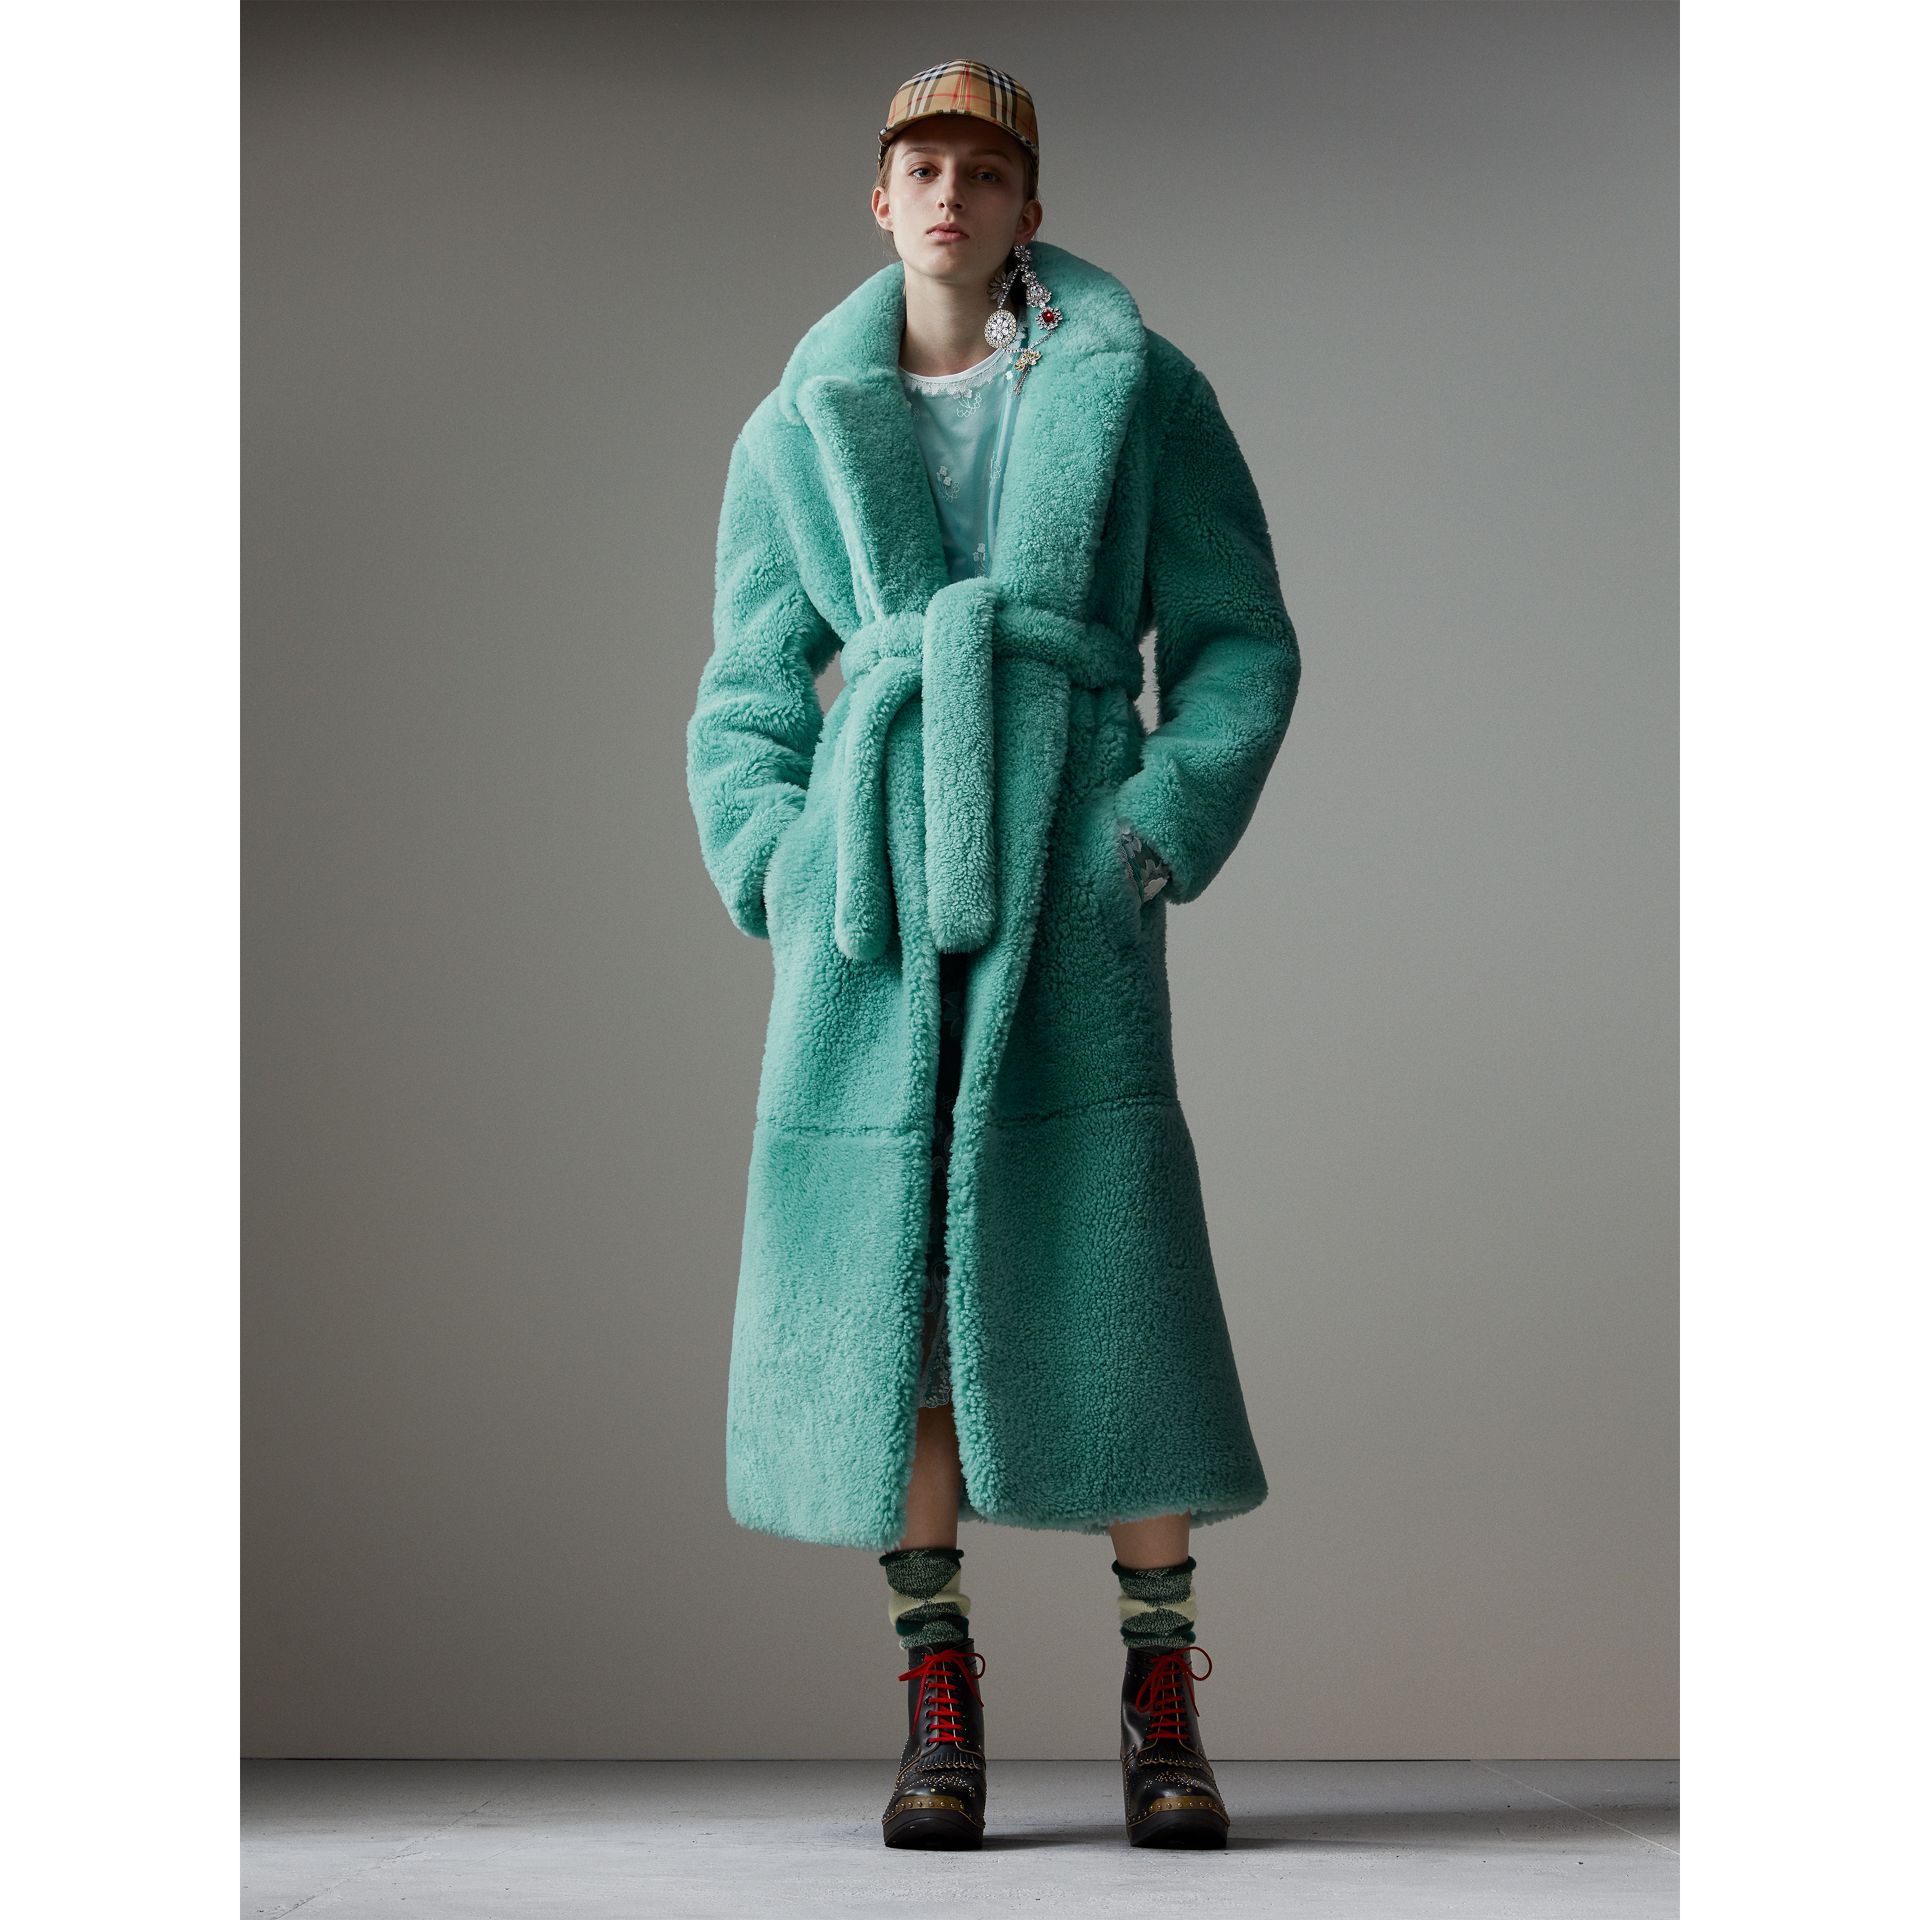 Shearling Oversized Coat in Turquoise - Women | Burberry - gallery image 1